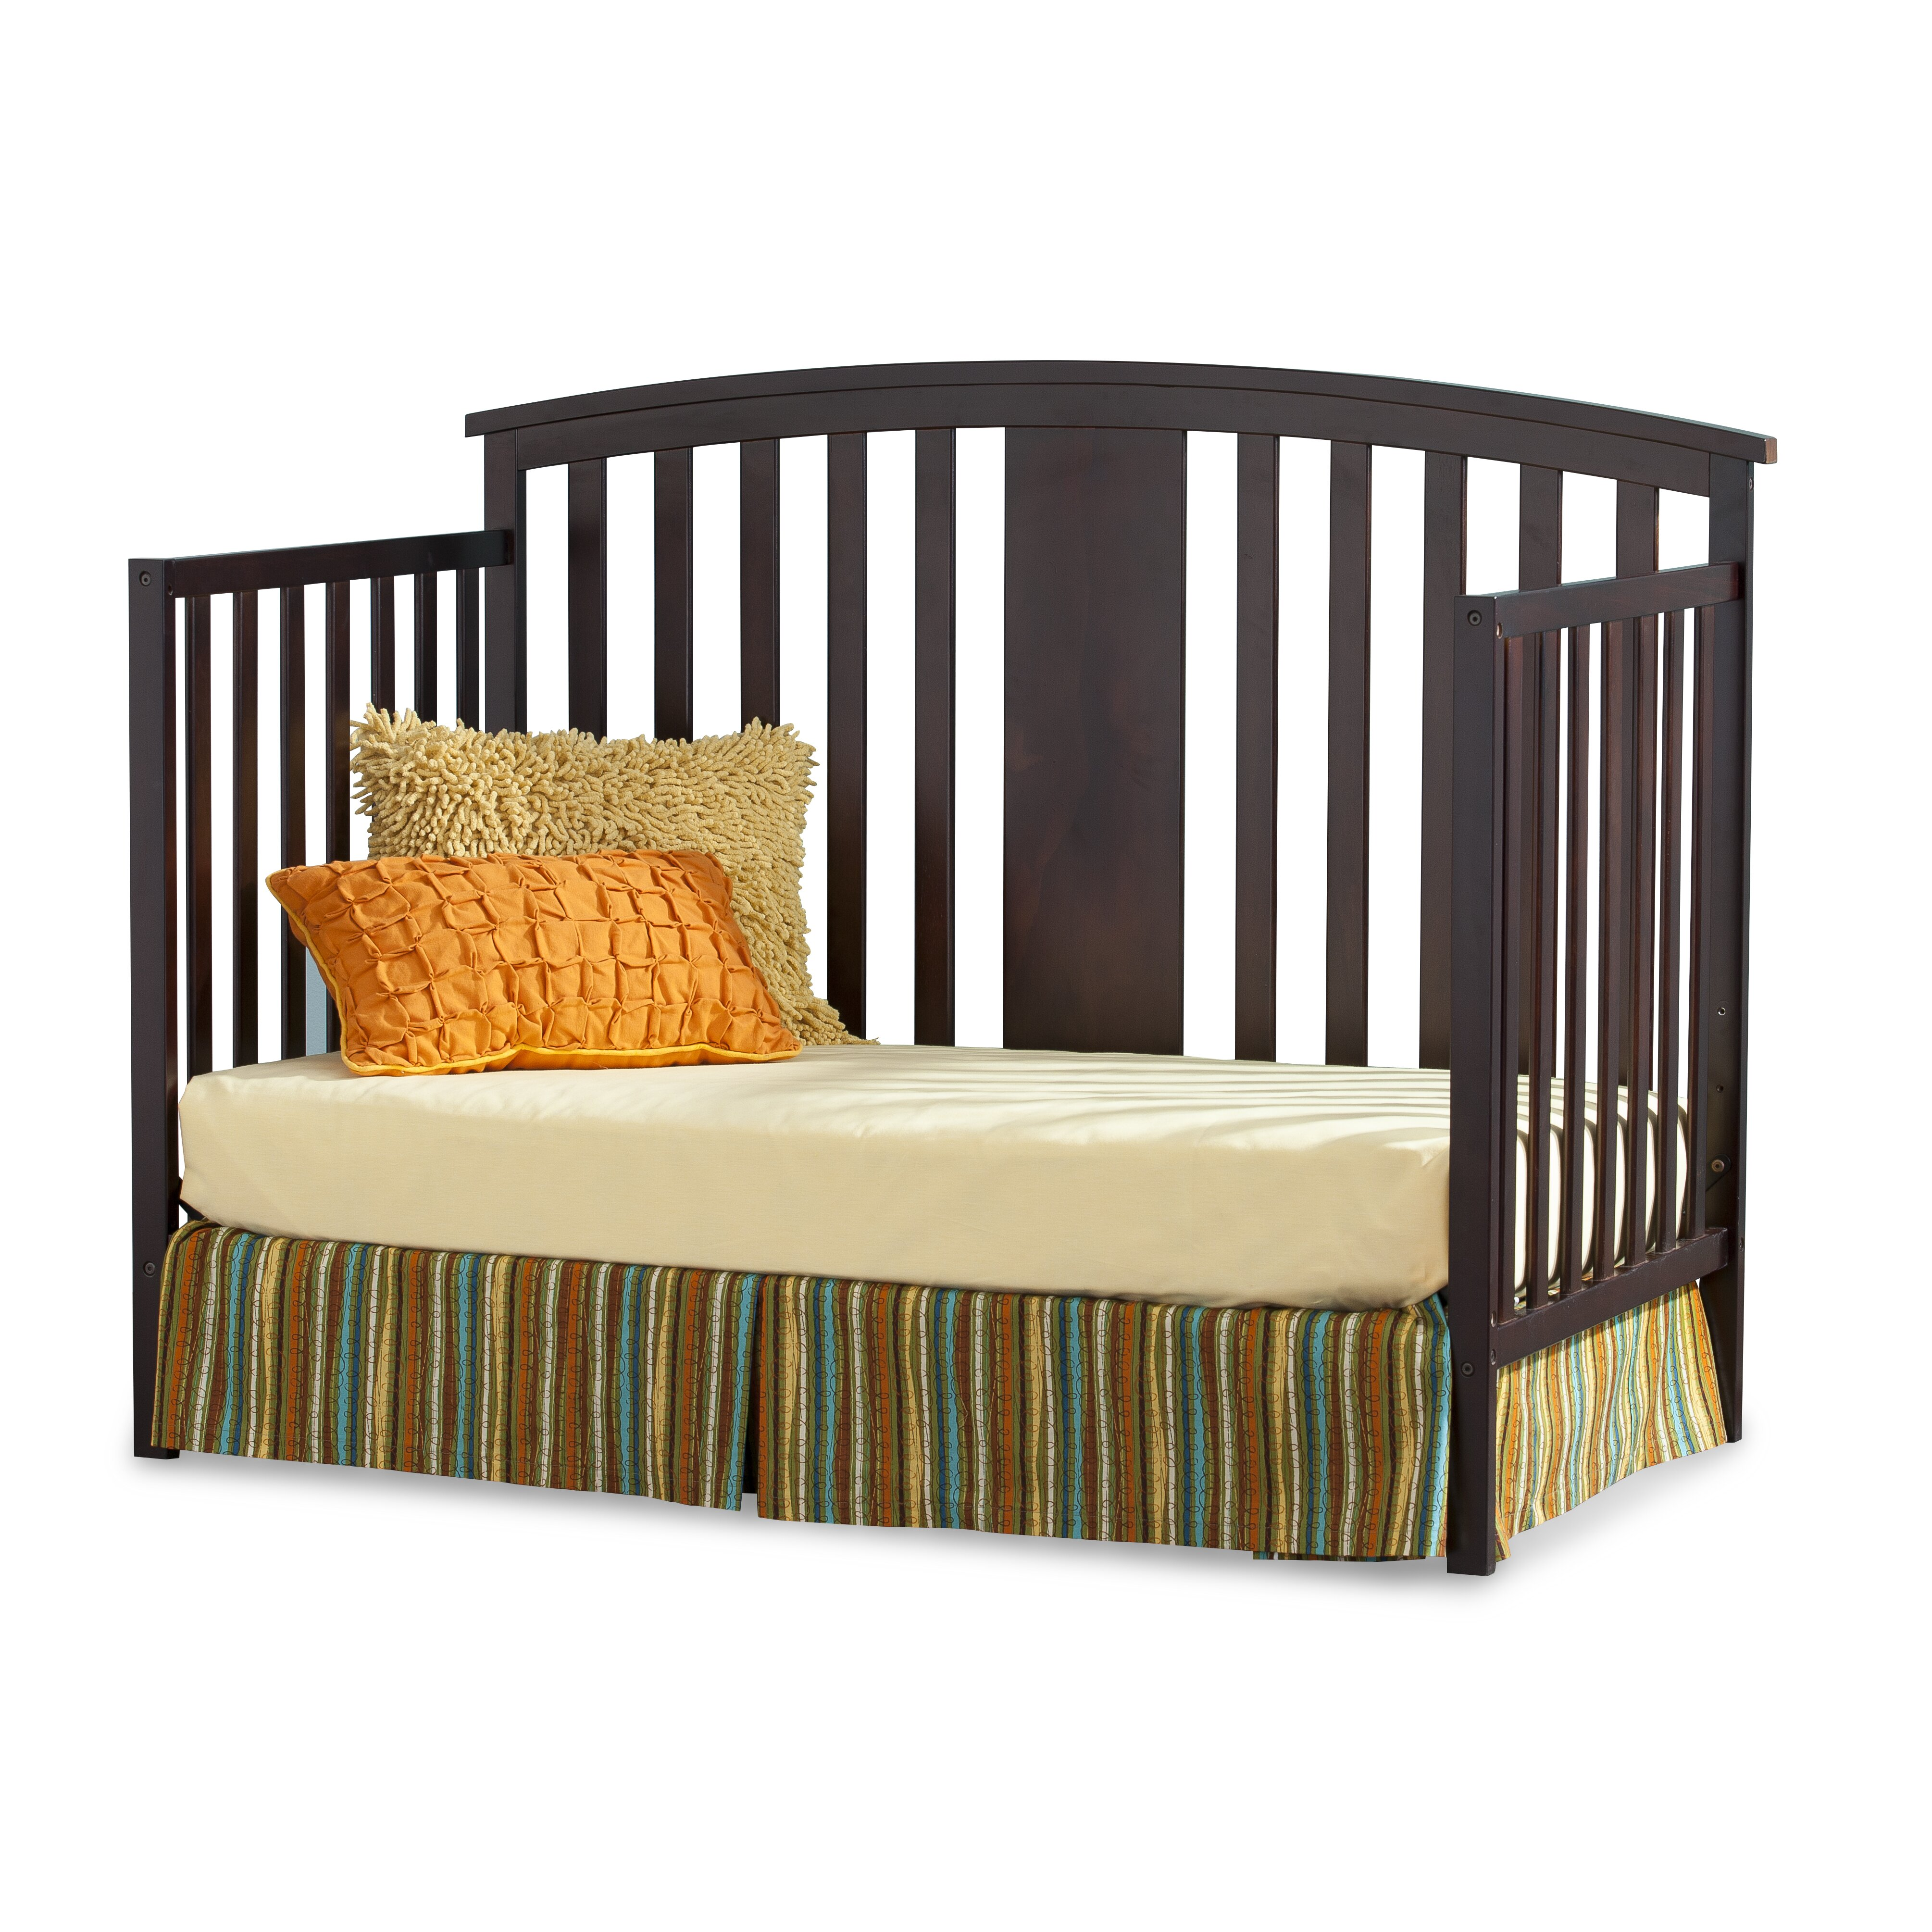 Panel Headboard 0 KD Accepts Metal Bed Frame LCF3244 in addition Storkcraft Carrara Fixed Side Convertible Crib 04587 101 KD1682 moreover 321292553947 likewise Small Kitchen Cabi s 3d Drawing in addition Kidkraftpersonalizeddeluxebigbrigh itchen. on kd kitchens and bath